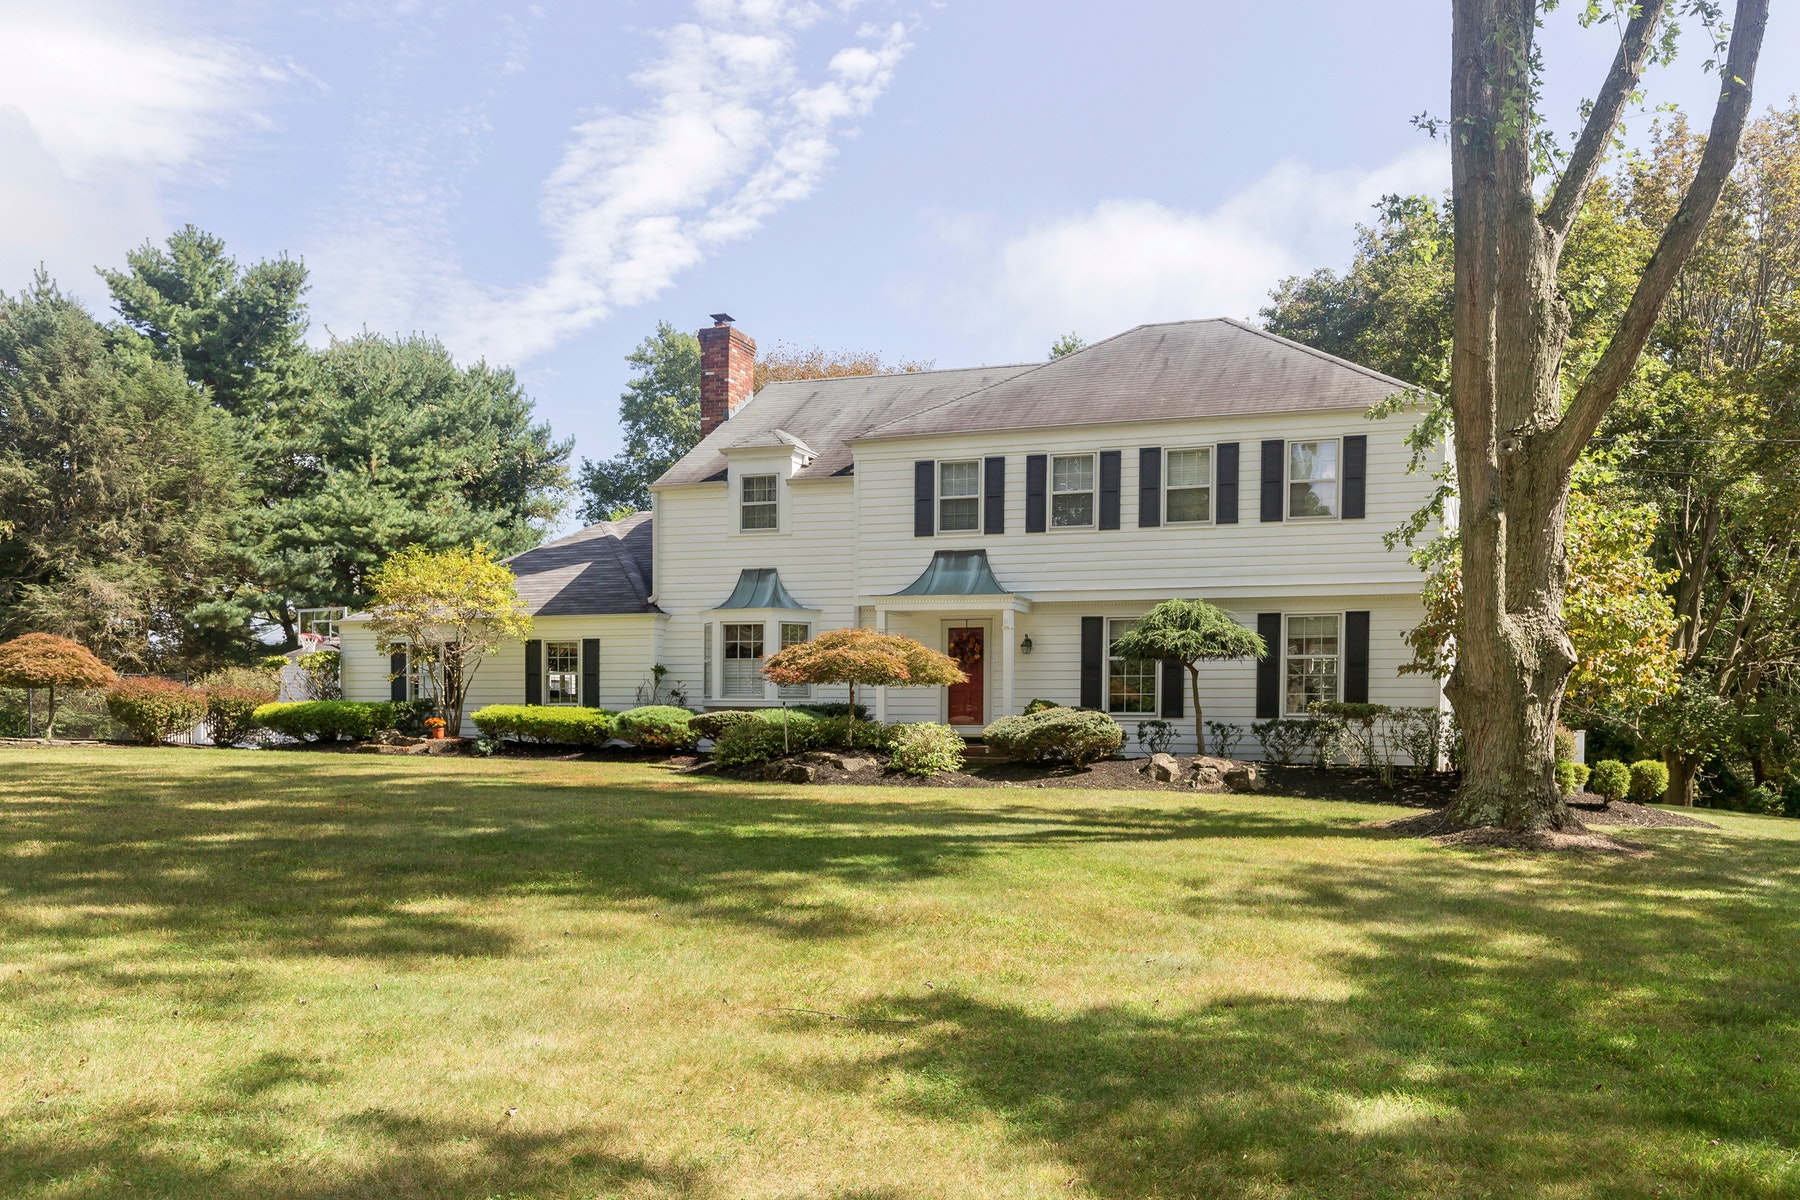 واحد منزل الأسرة للـ Sale في Clover Hill Colonial 33 Ridge Road, Colts Neck, New Jersey, 07722 United States